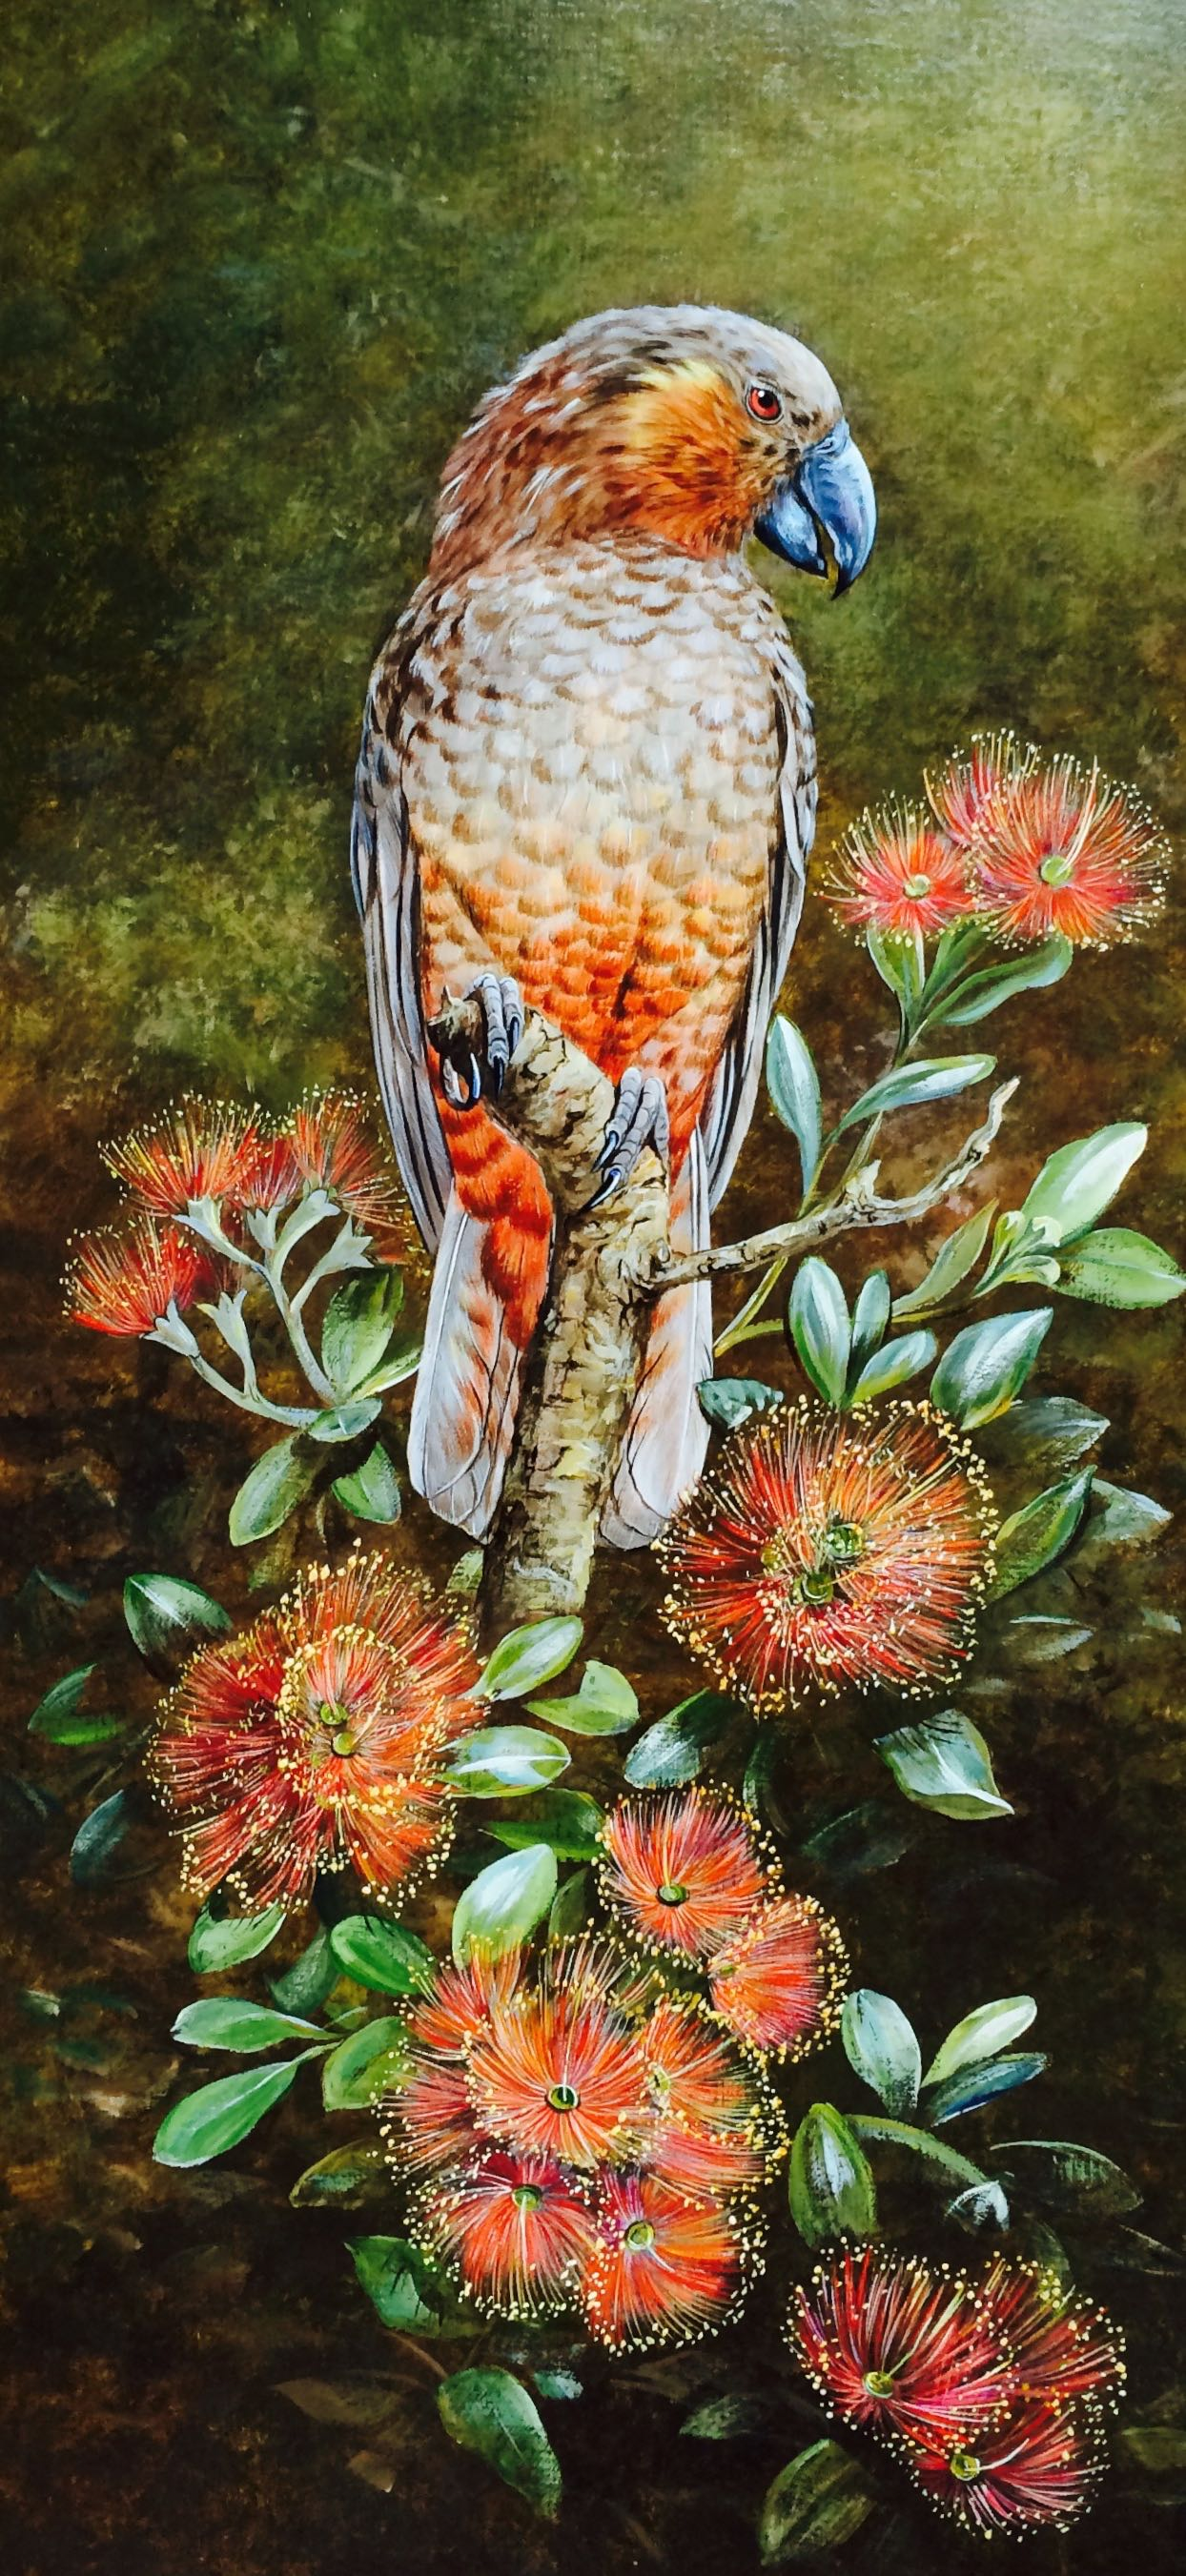 NZ Kaka on Rata